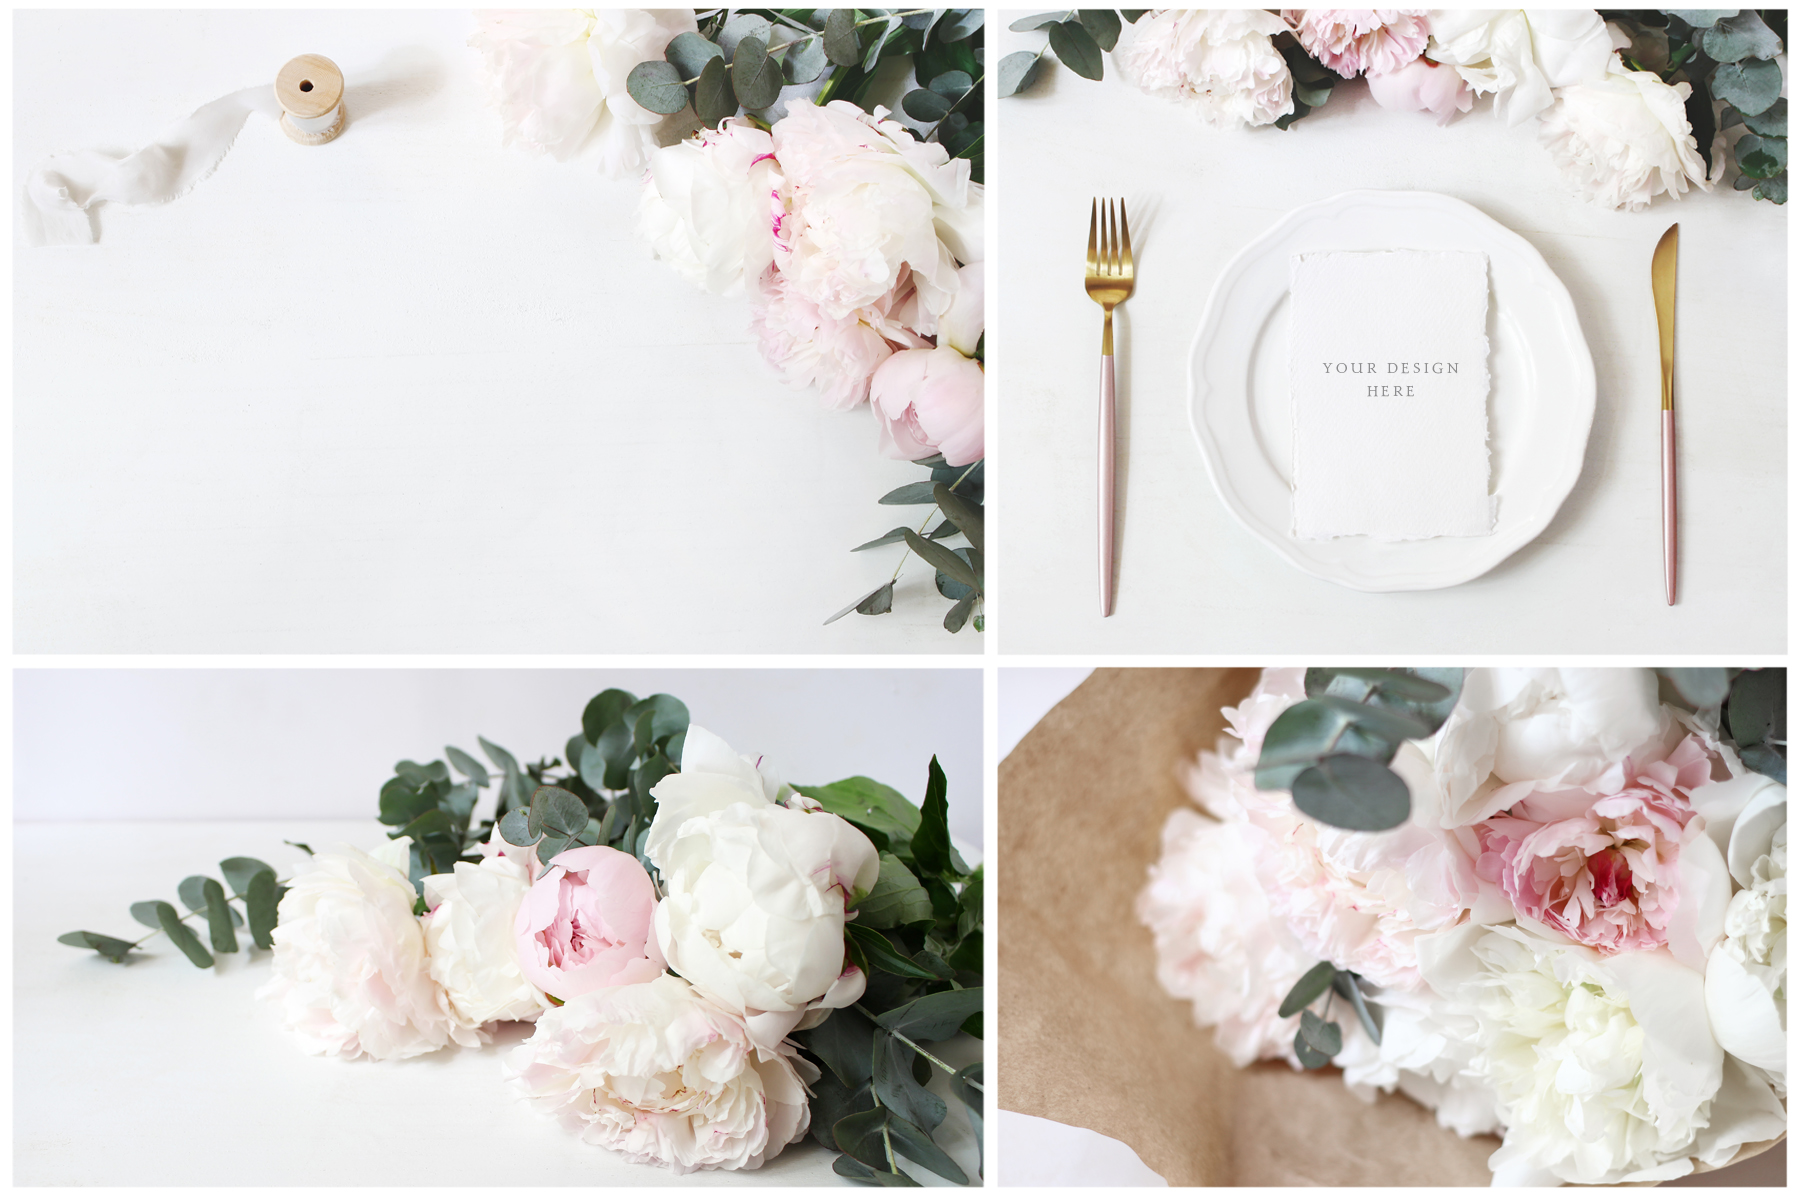 Vintage peony wedding mockups & stock photo bundle example image 8